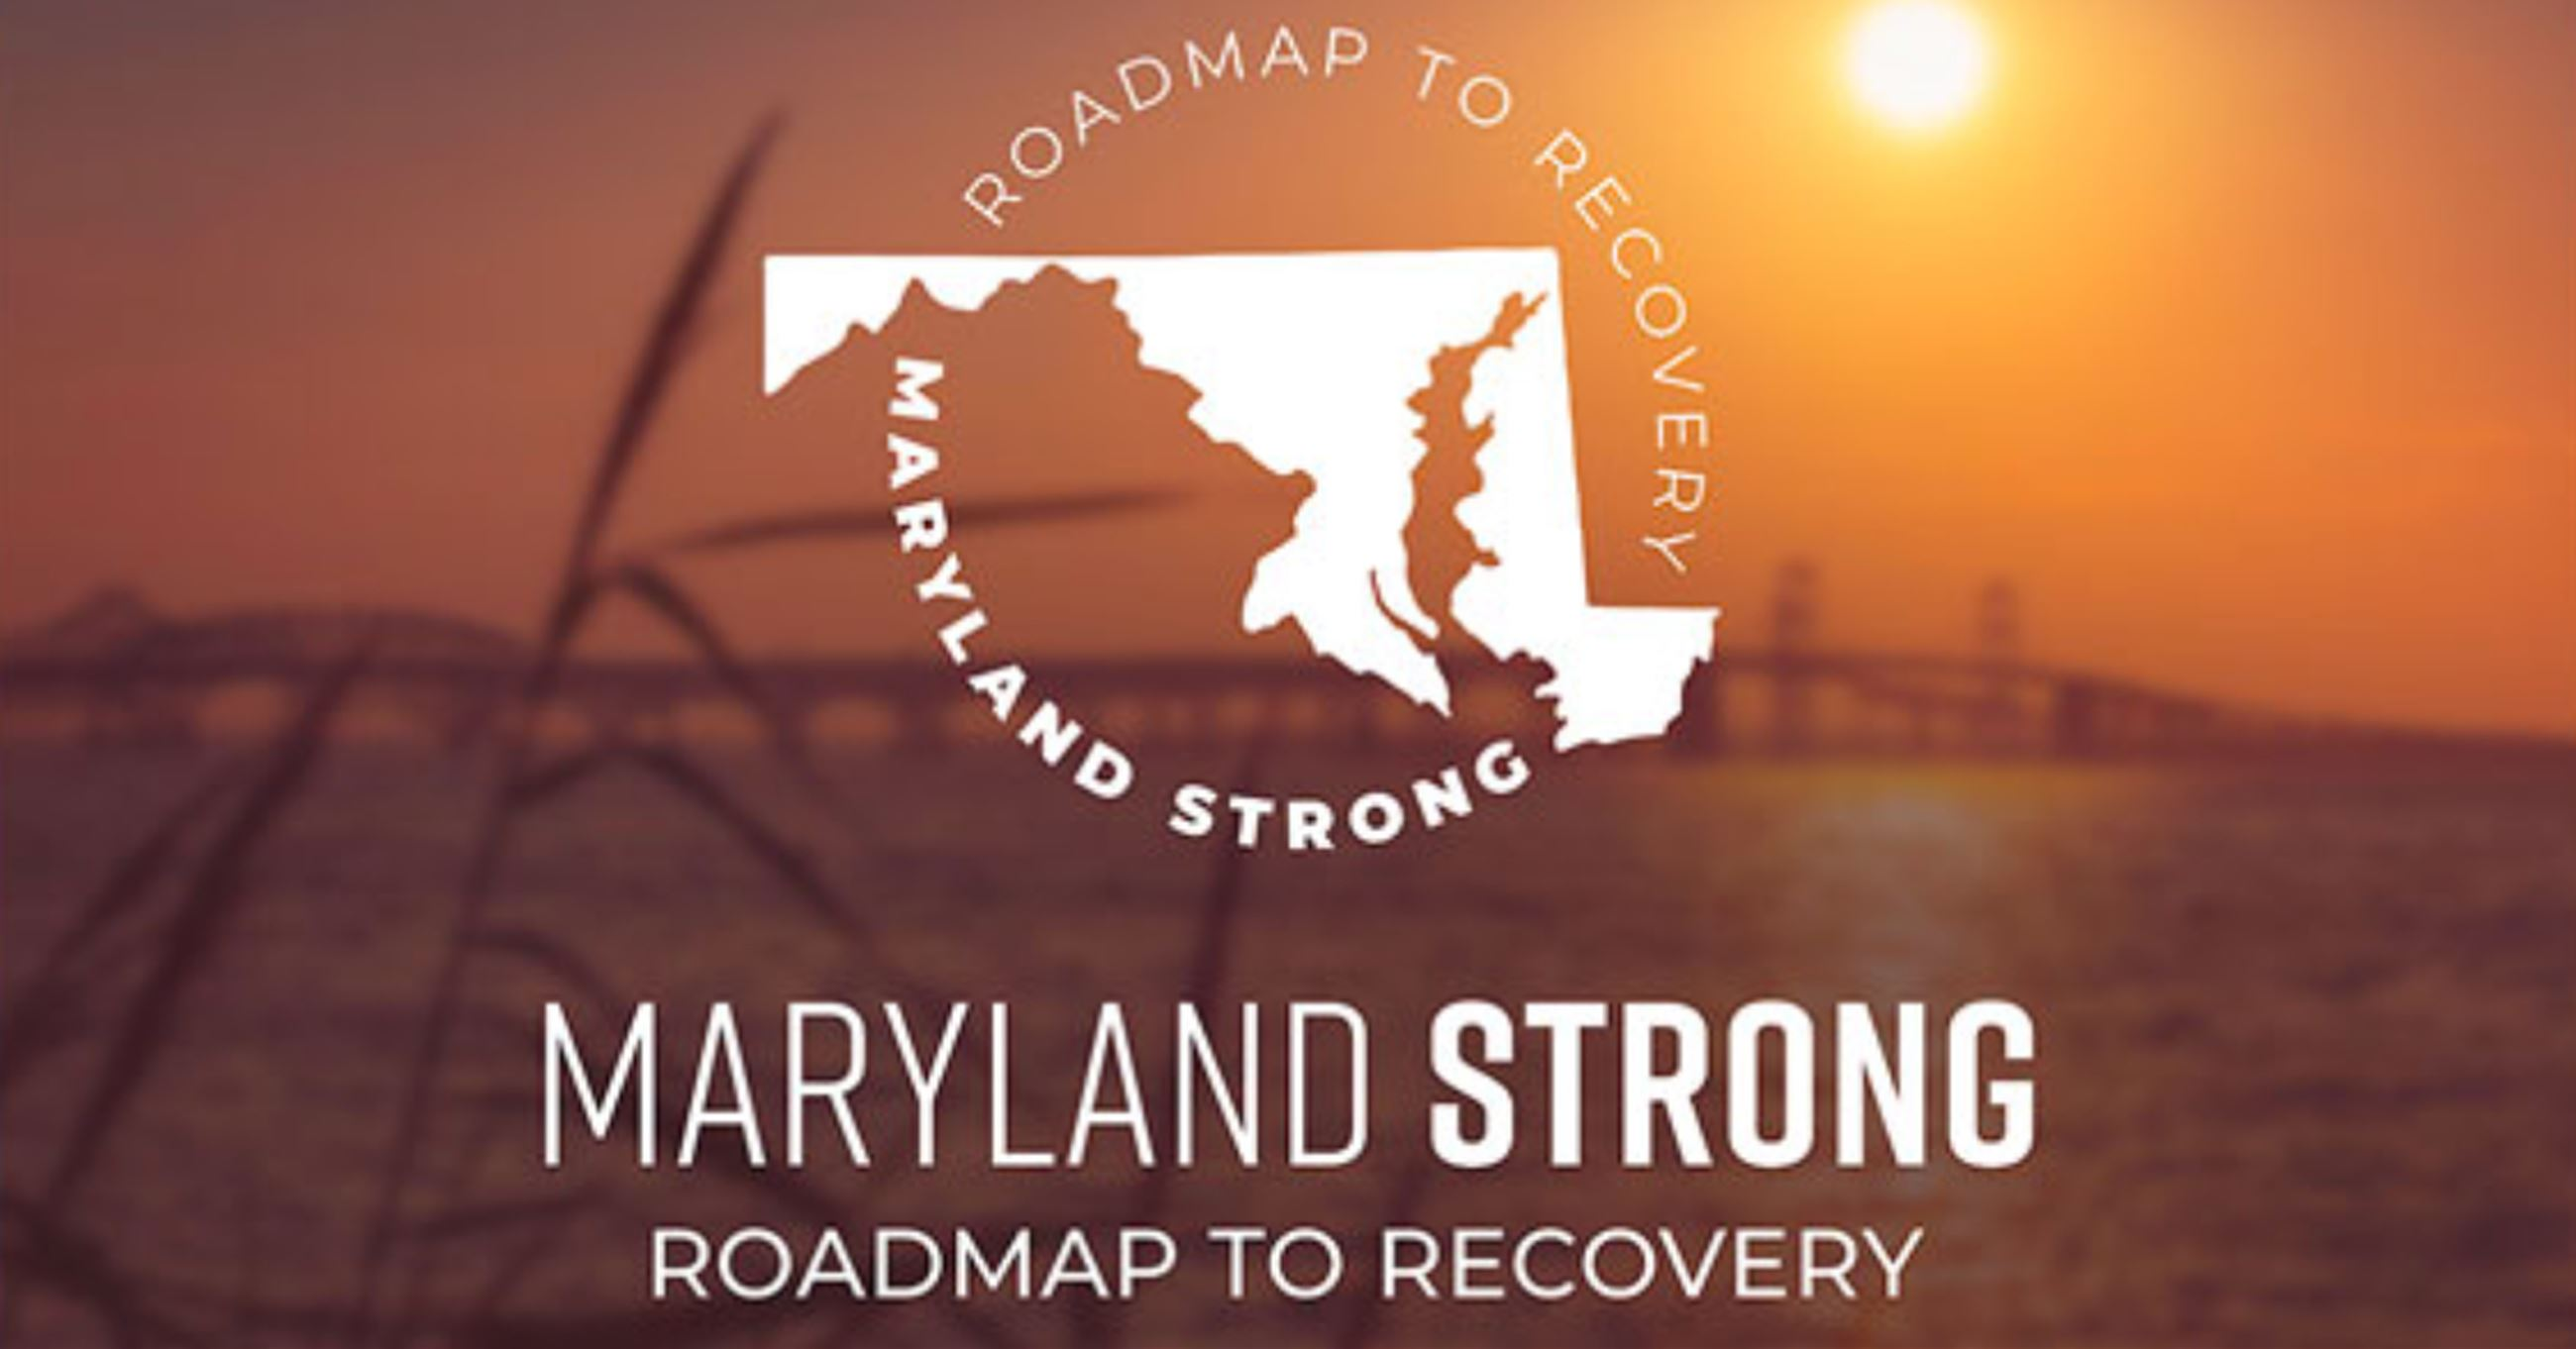 MD roadmap to recovery